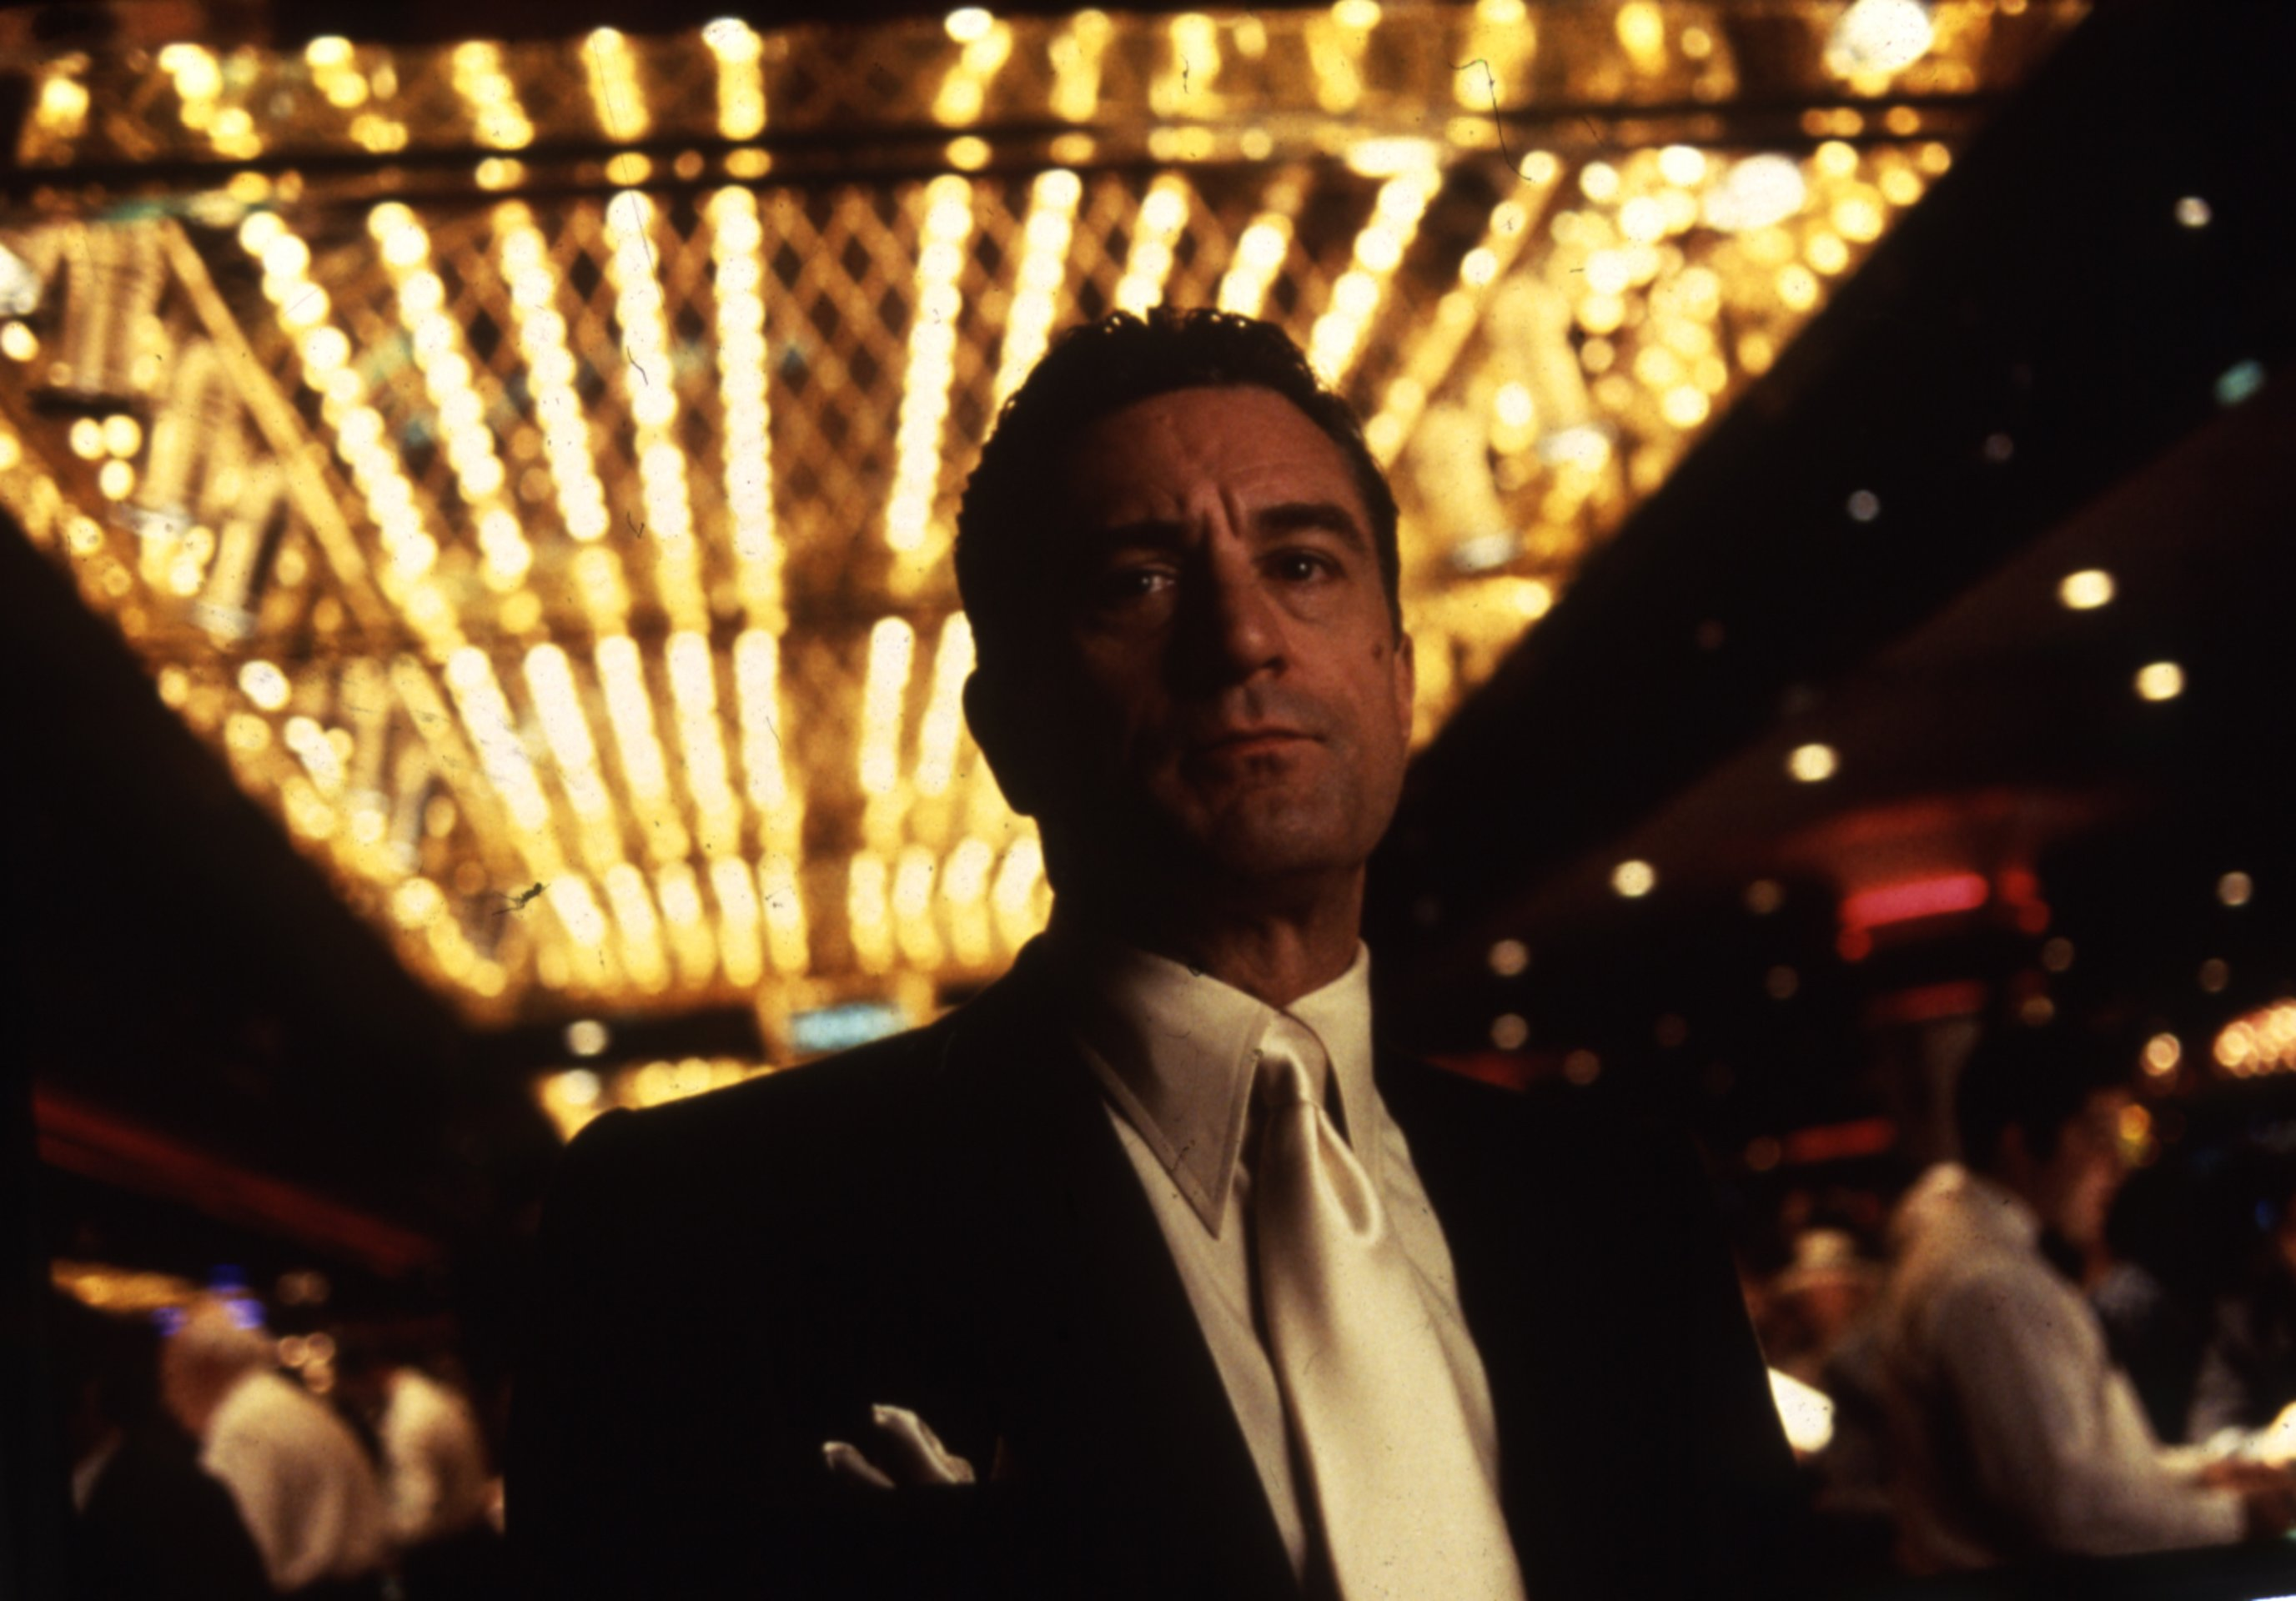 Deniro and blueberries casino the real casino royal channel 4